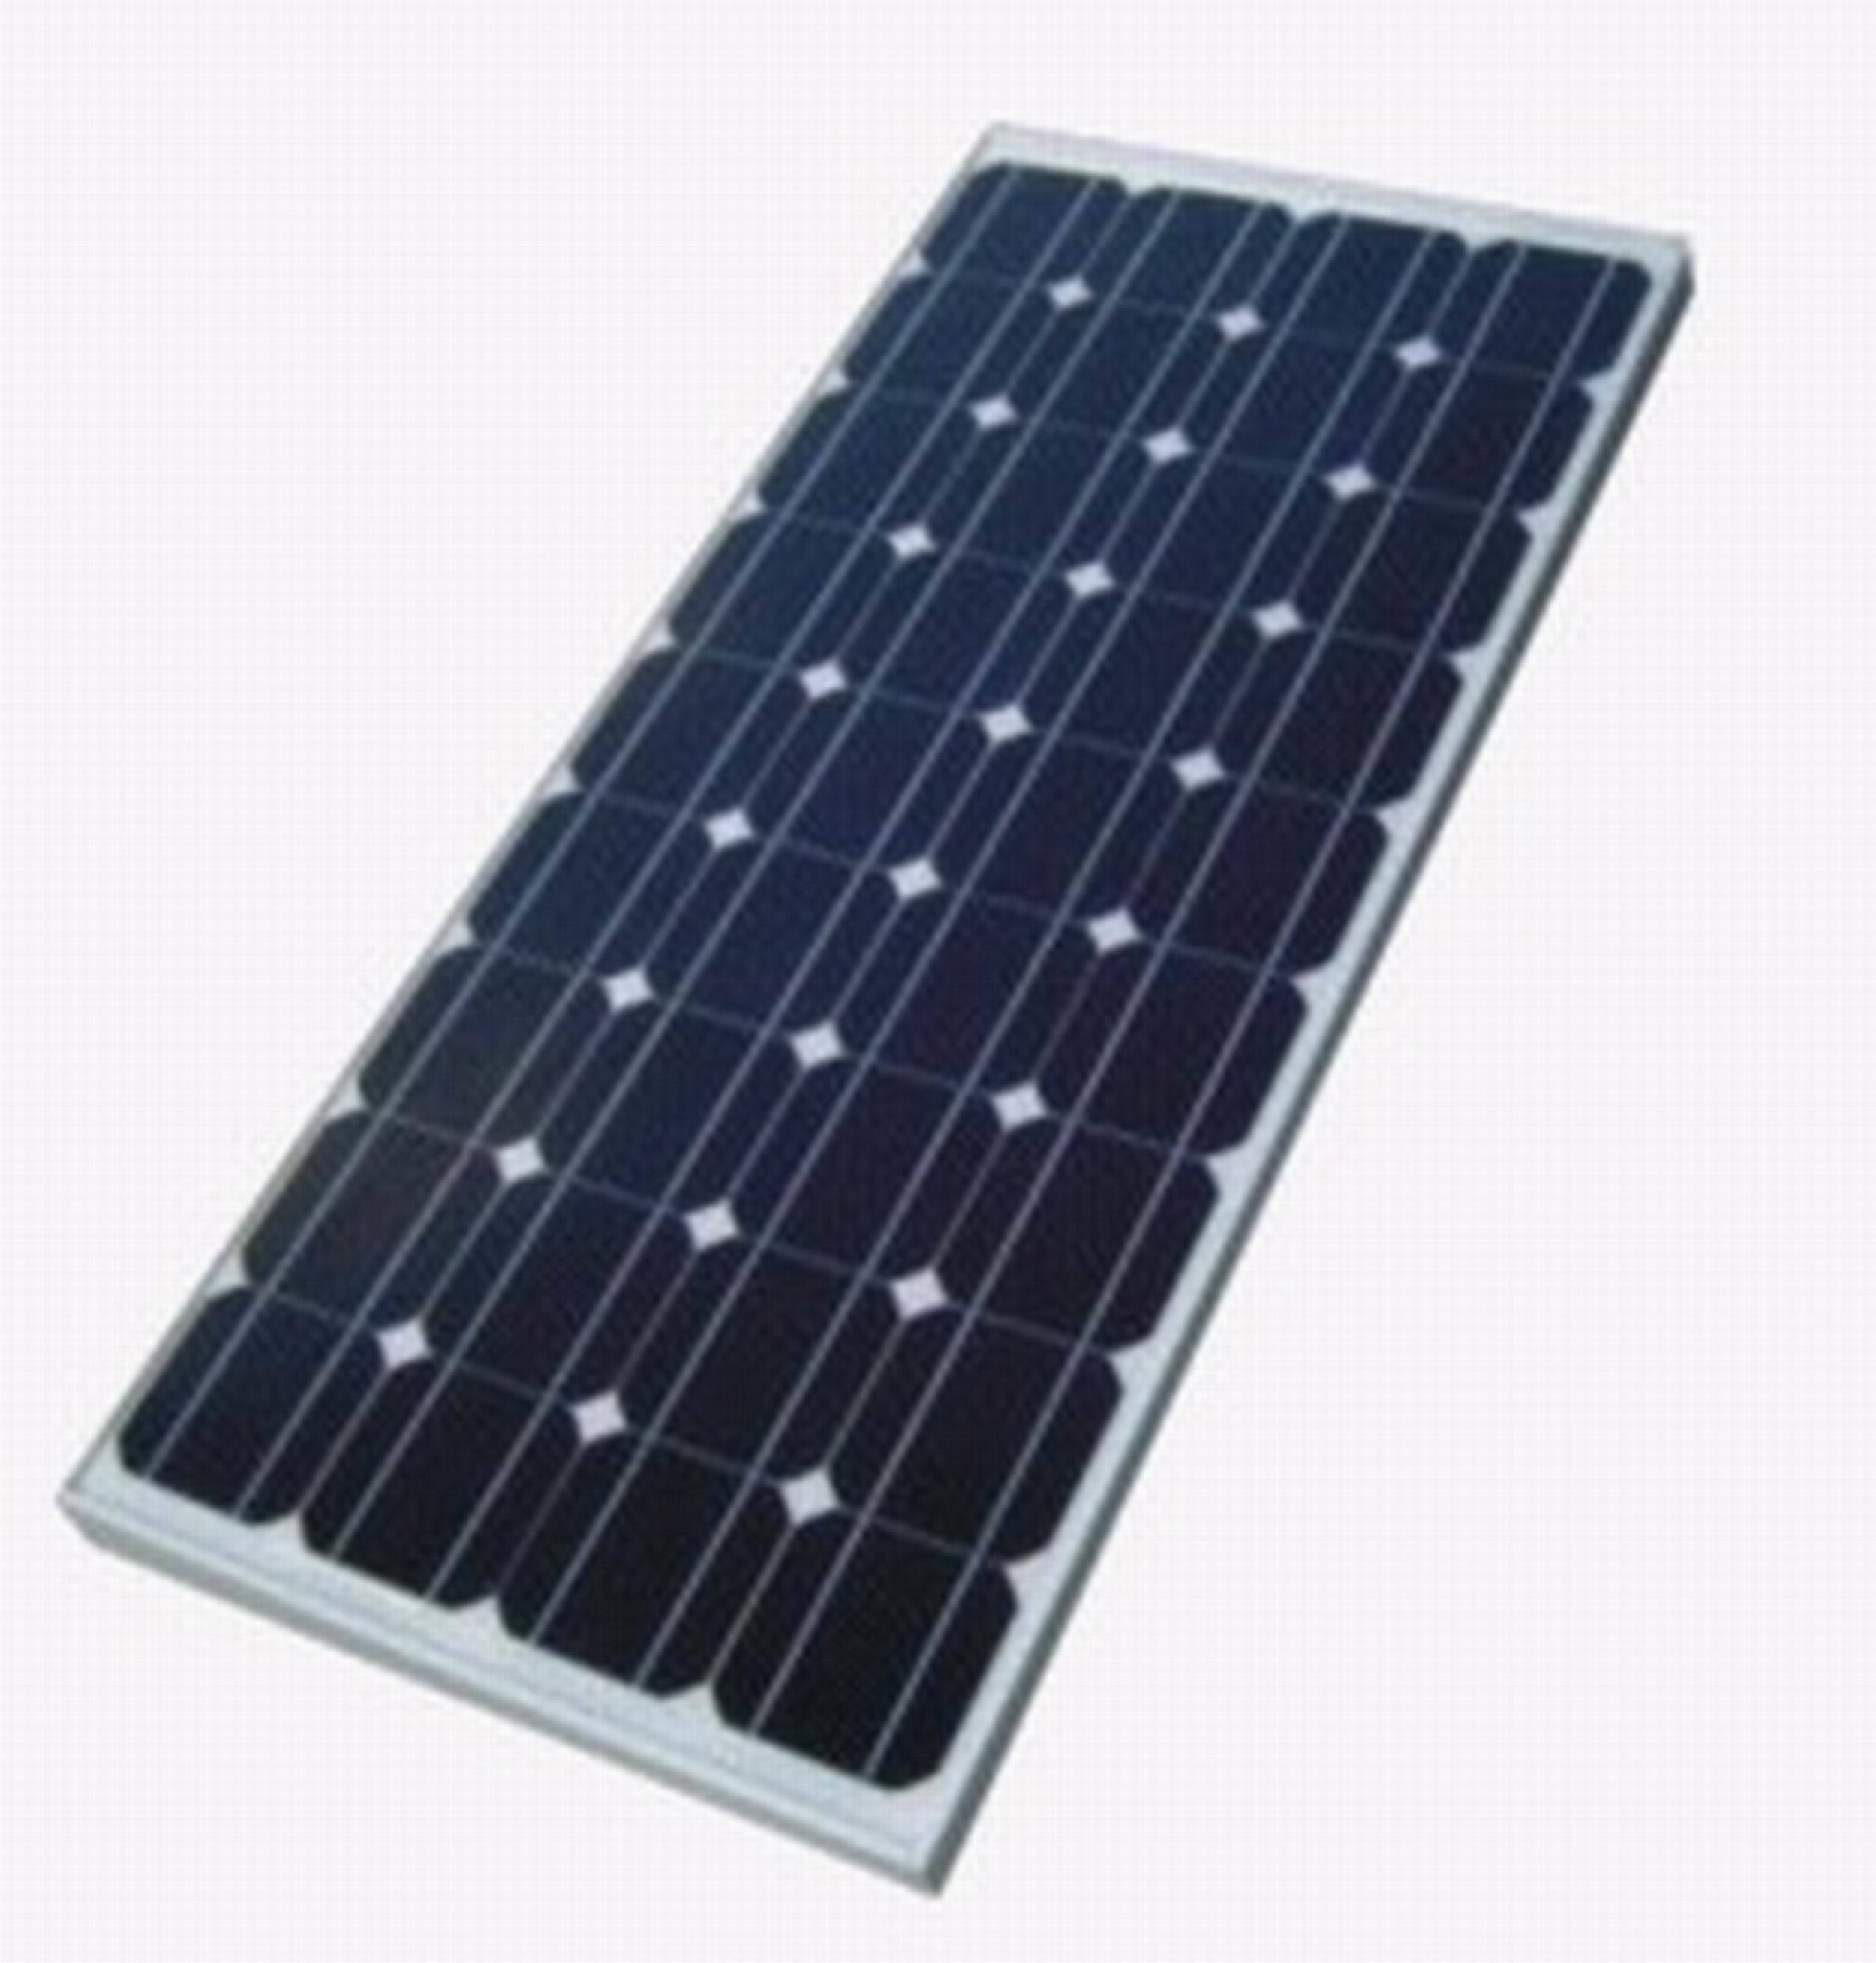 monocrystalline solar panel manufacturers from china autos post. Black Bedroom Furniture Sets. Home Design Ideas